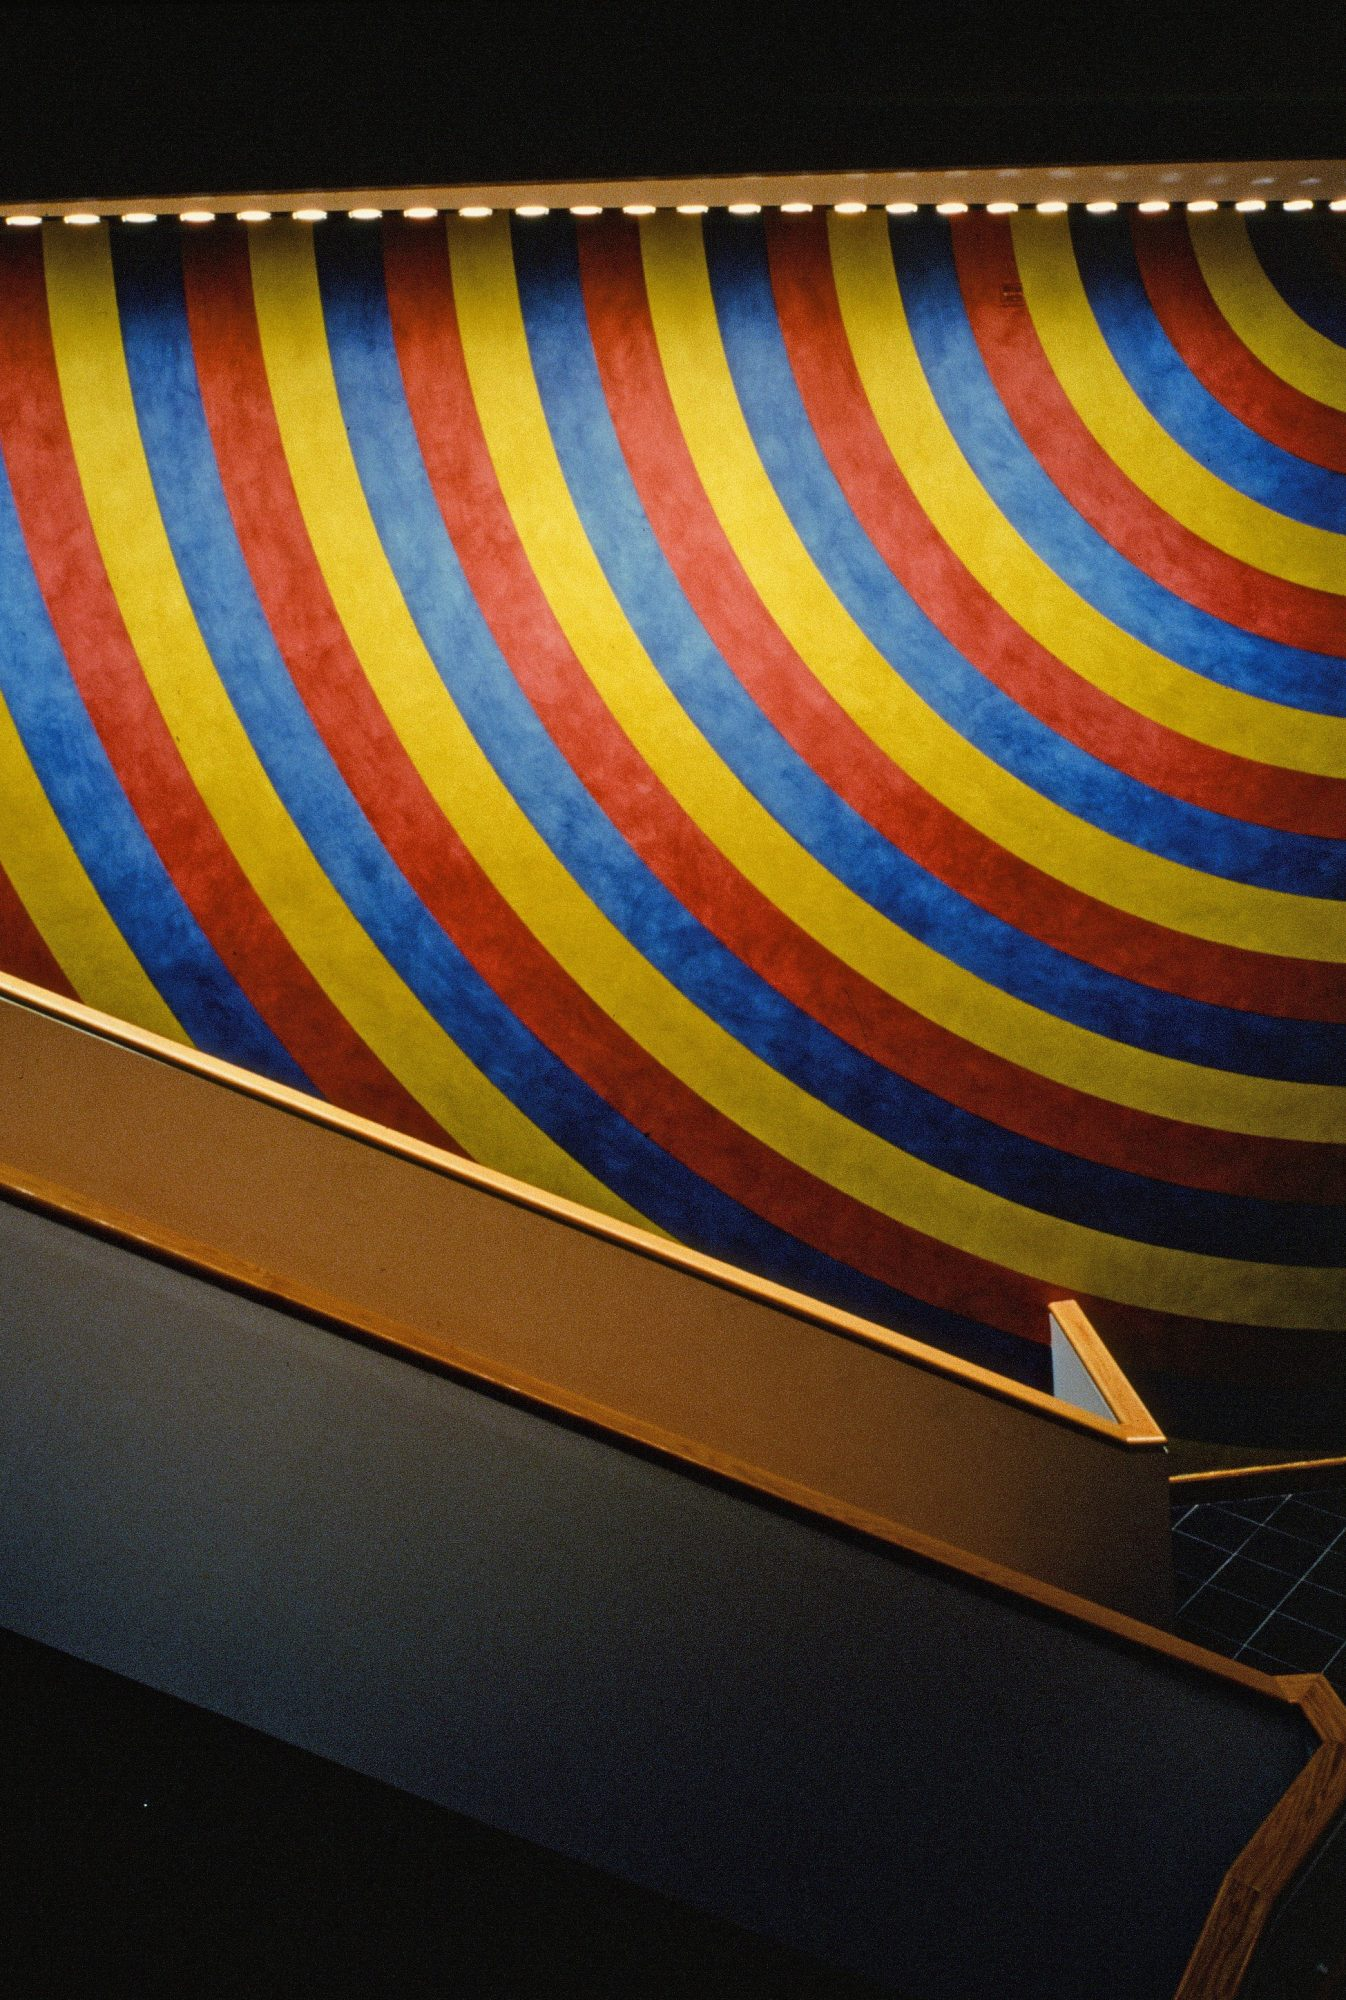 Sol LeWitt, Wall Drawing #559, Installed in WCMA atrium 1988.